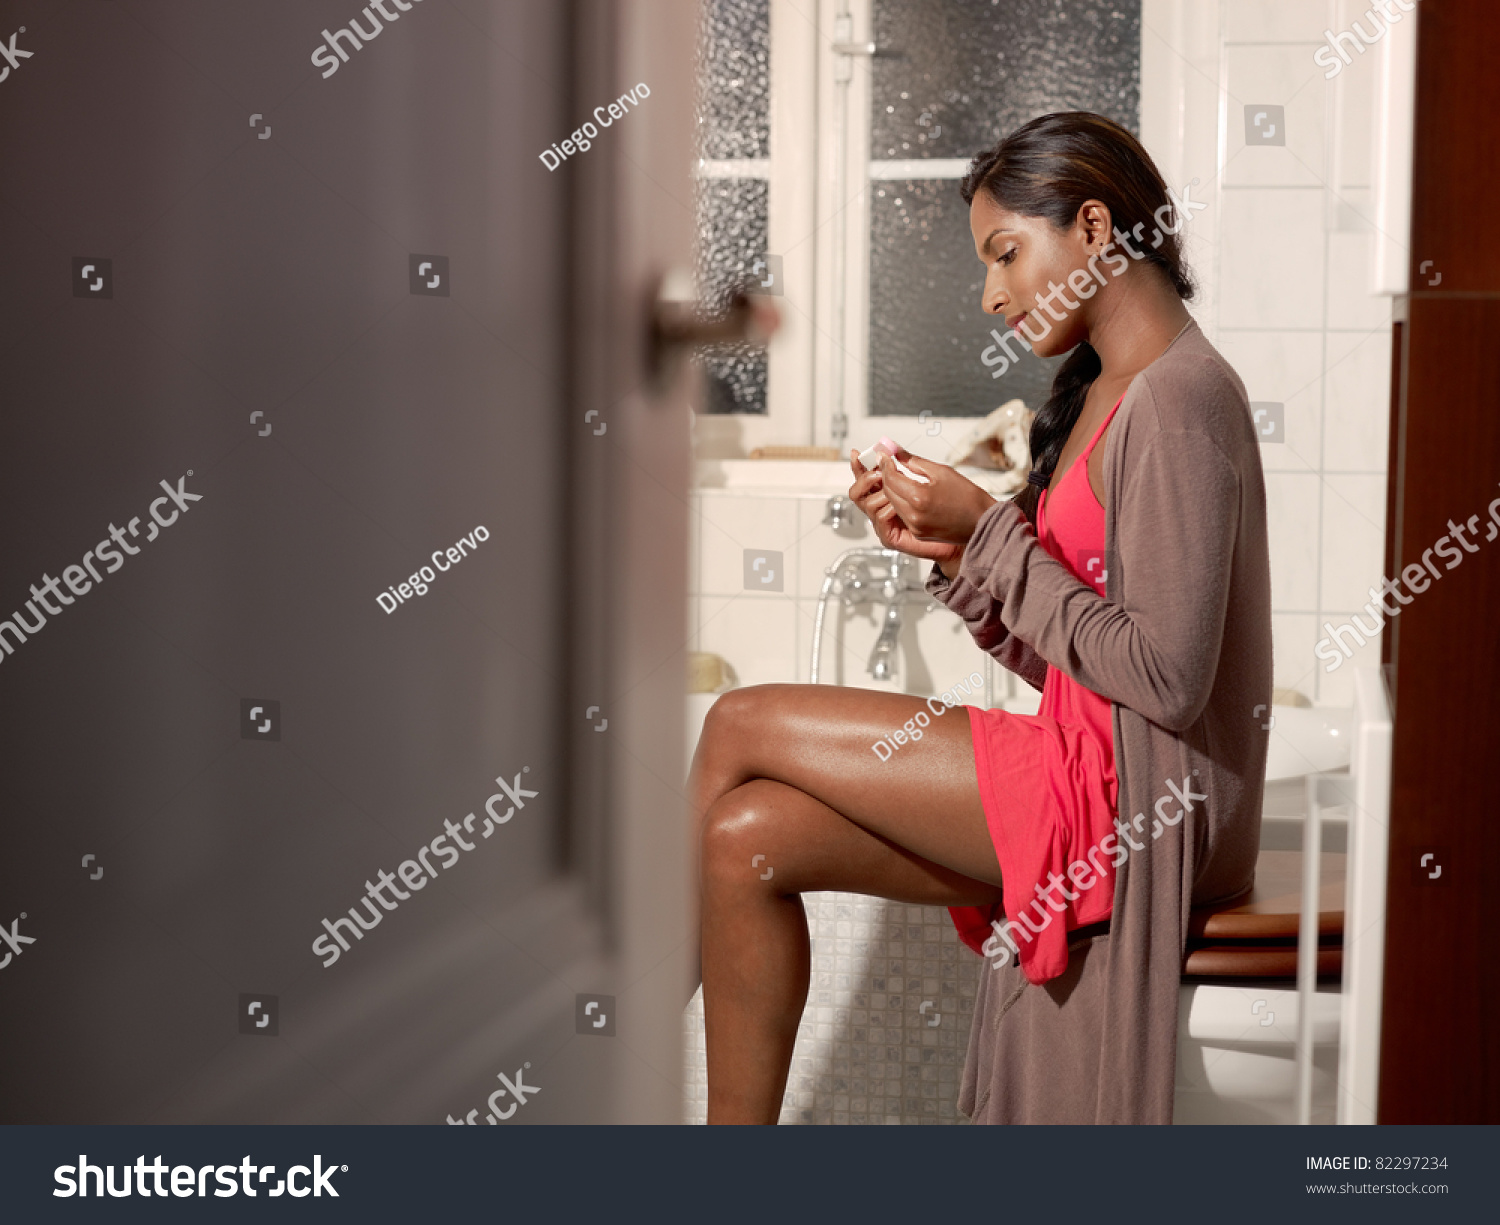 Happy Young Woman Using Pregnancy Test In Bathroom Horizontal. Black And White Tile Floor Bathroom